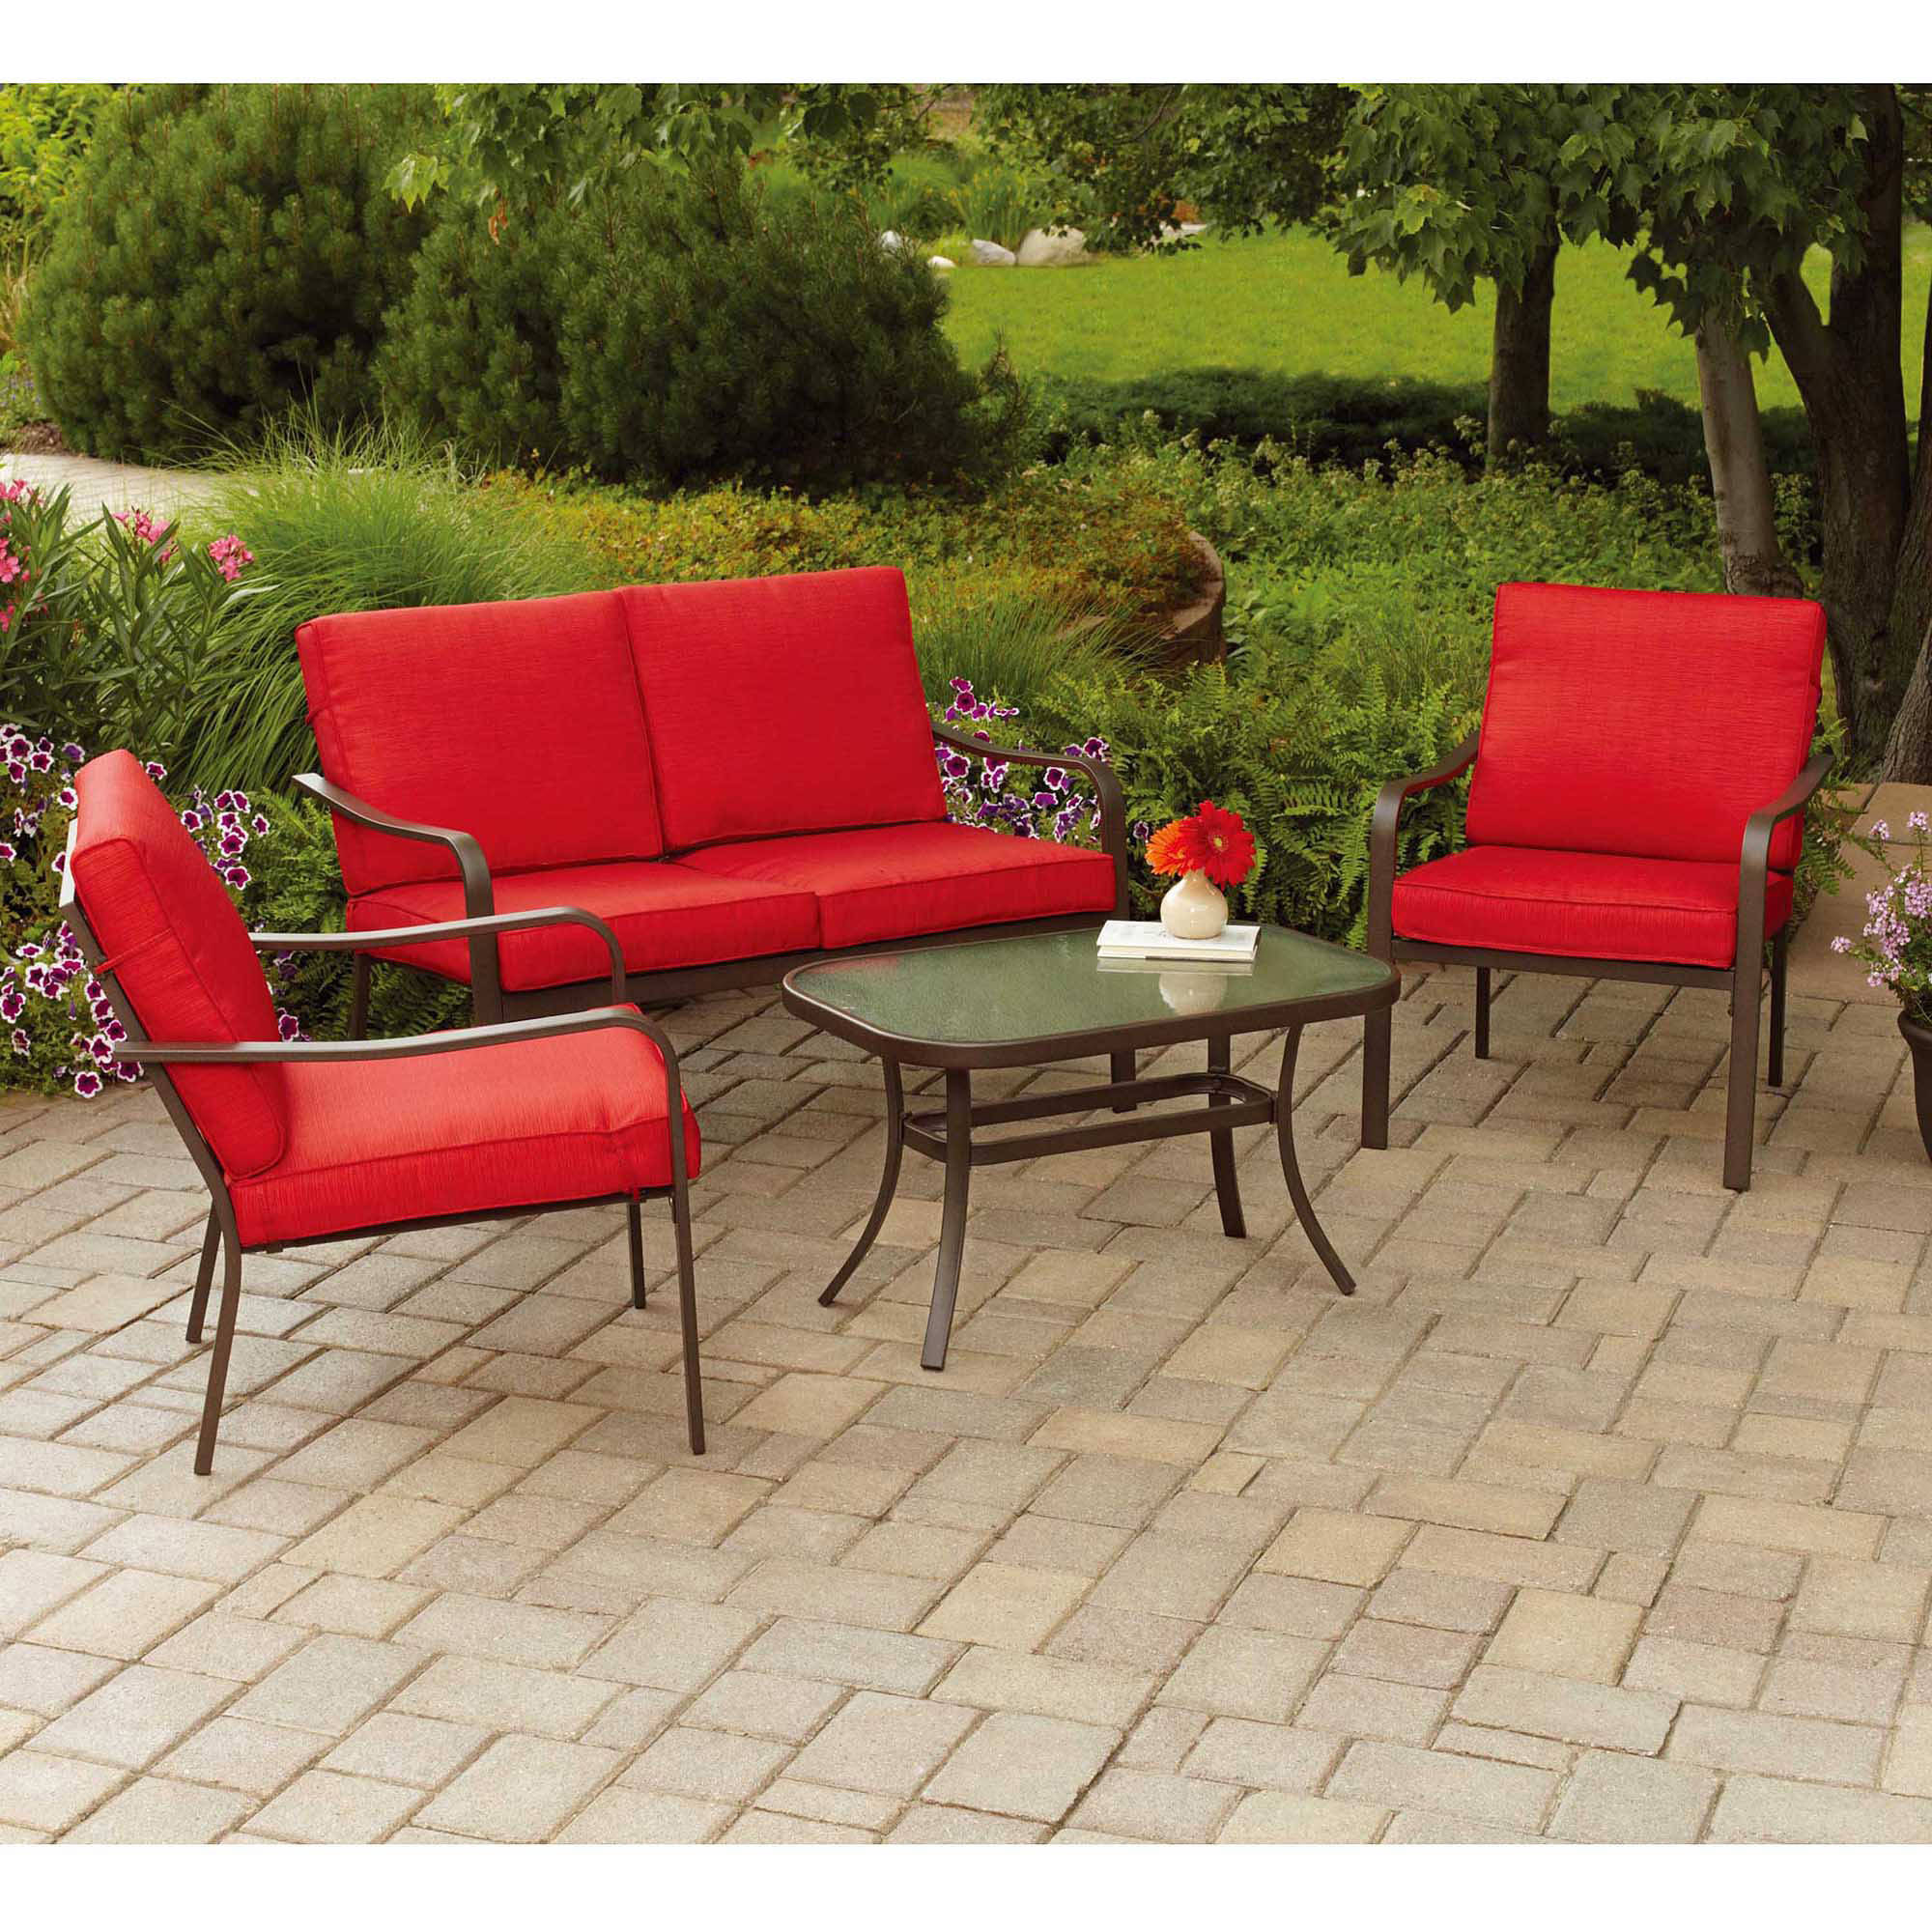 Delicieux Mainstays Stanton Cushioned 4 Piece Patio Conversation Set, Red